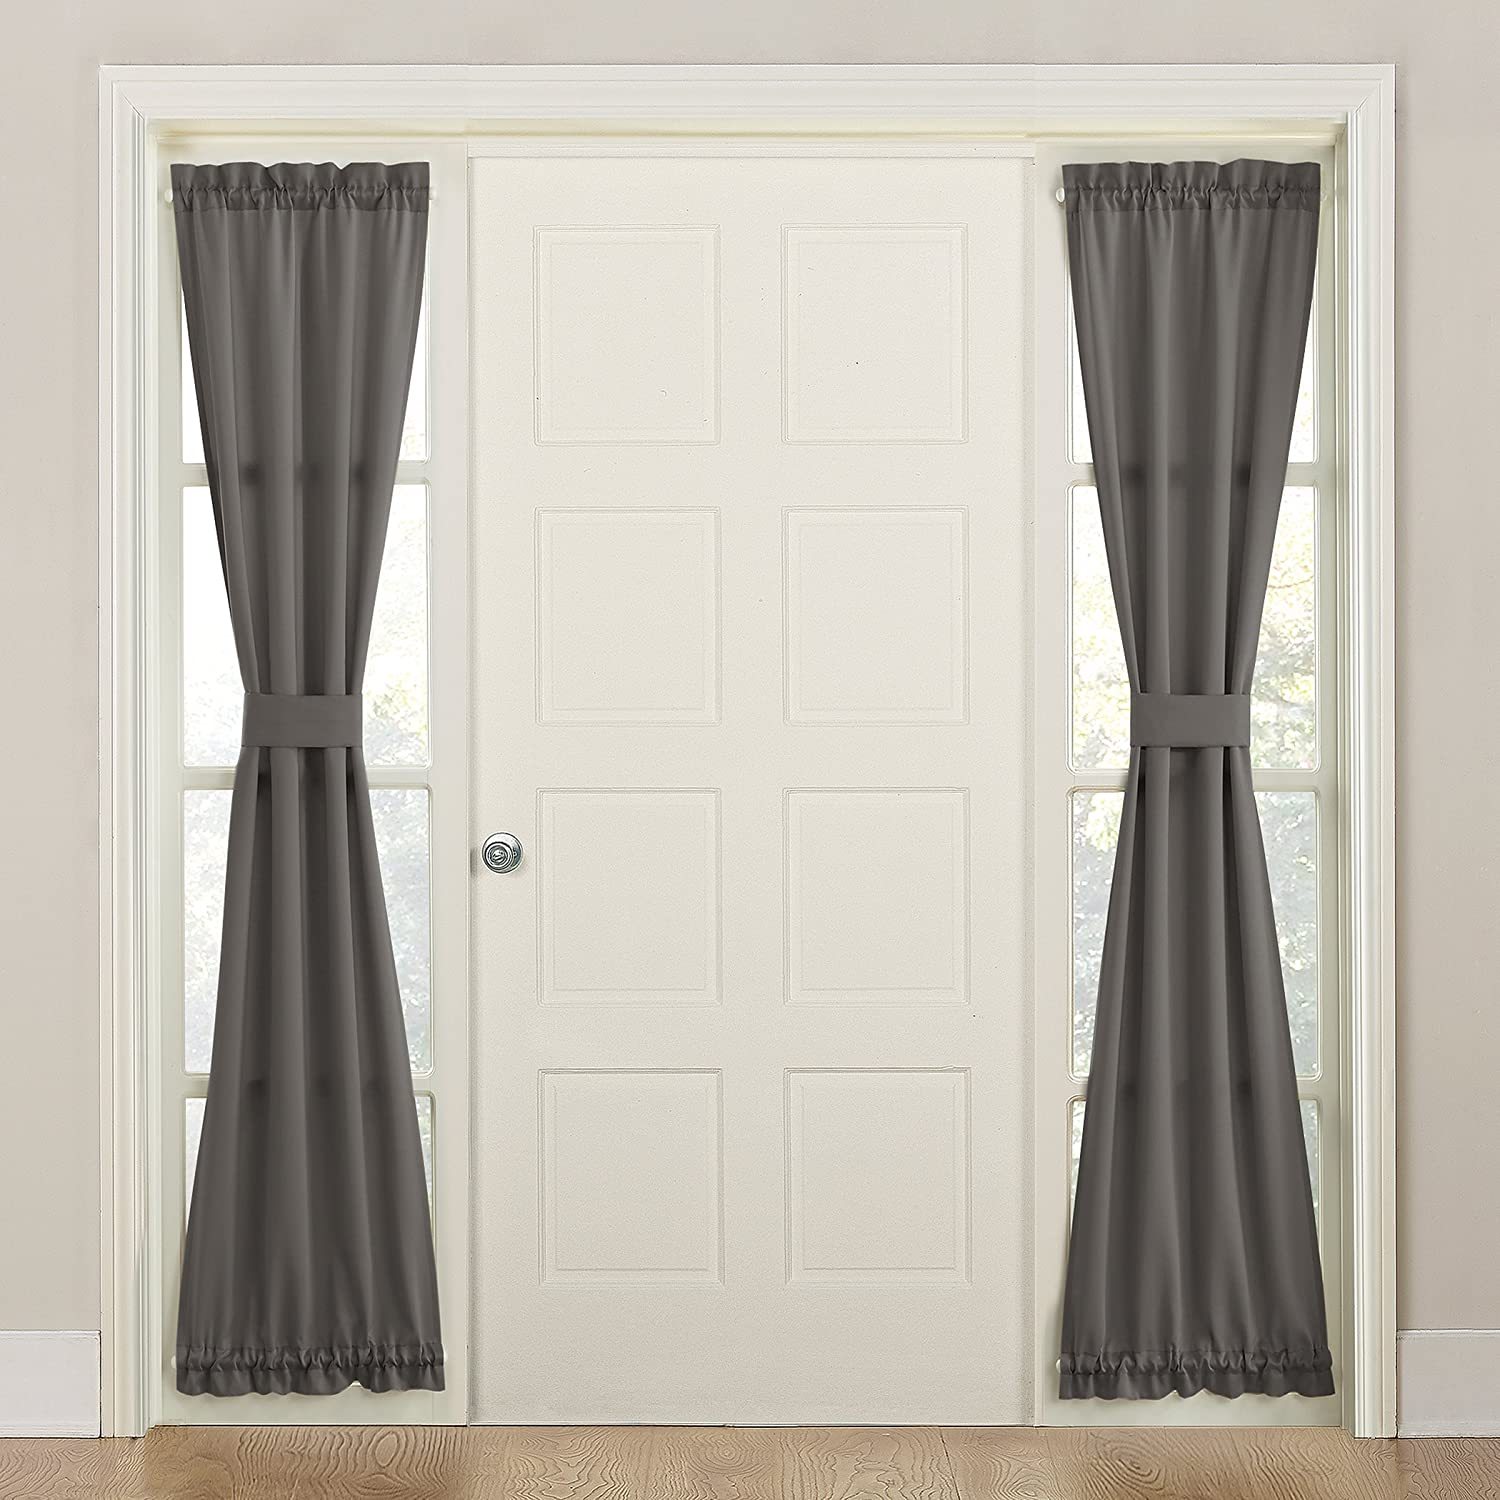 "Sun Zero Energy Front Door Sidelight Curtain Panel with Tie Back, 26"" x 72"", Steel Gray"